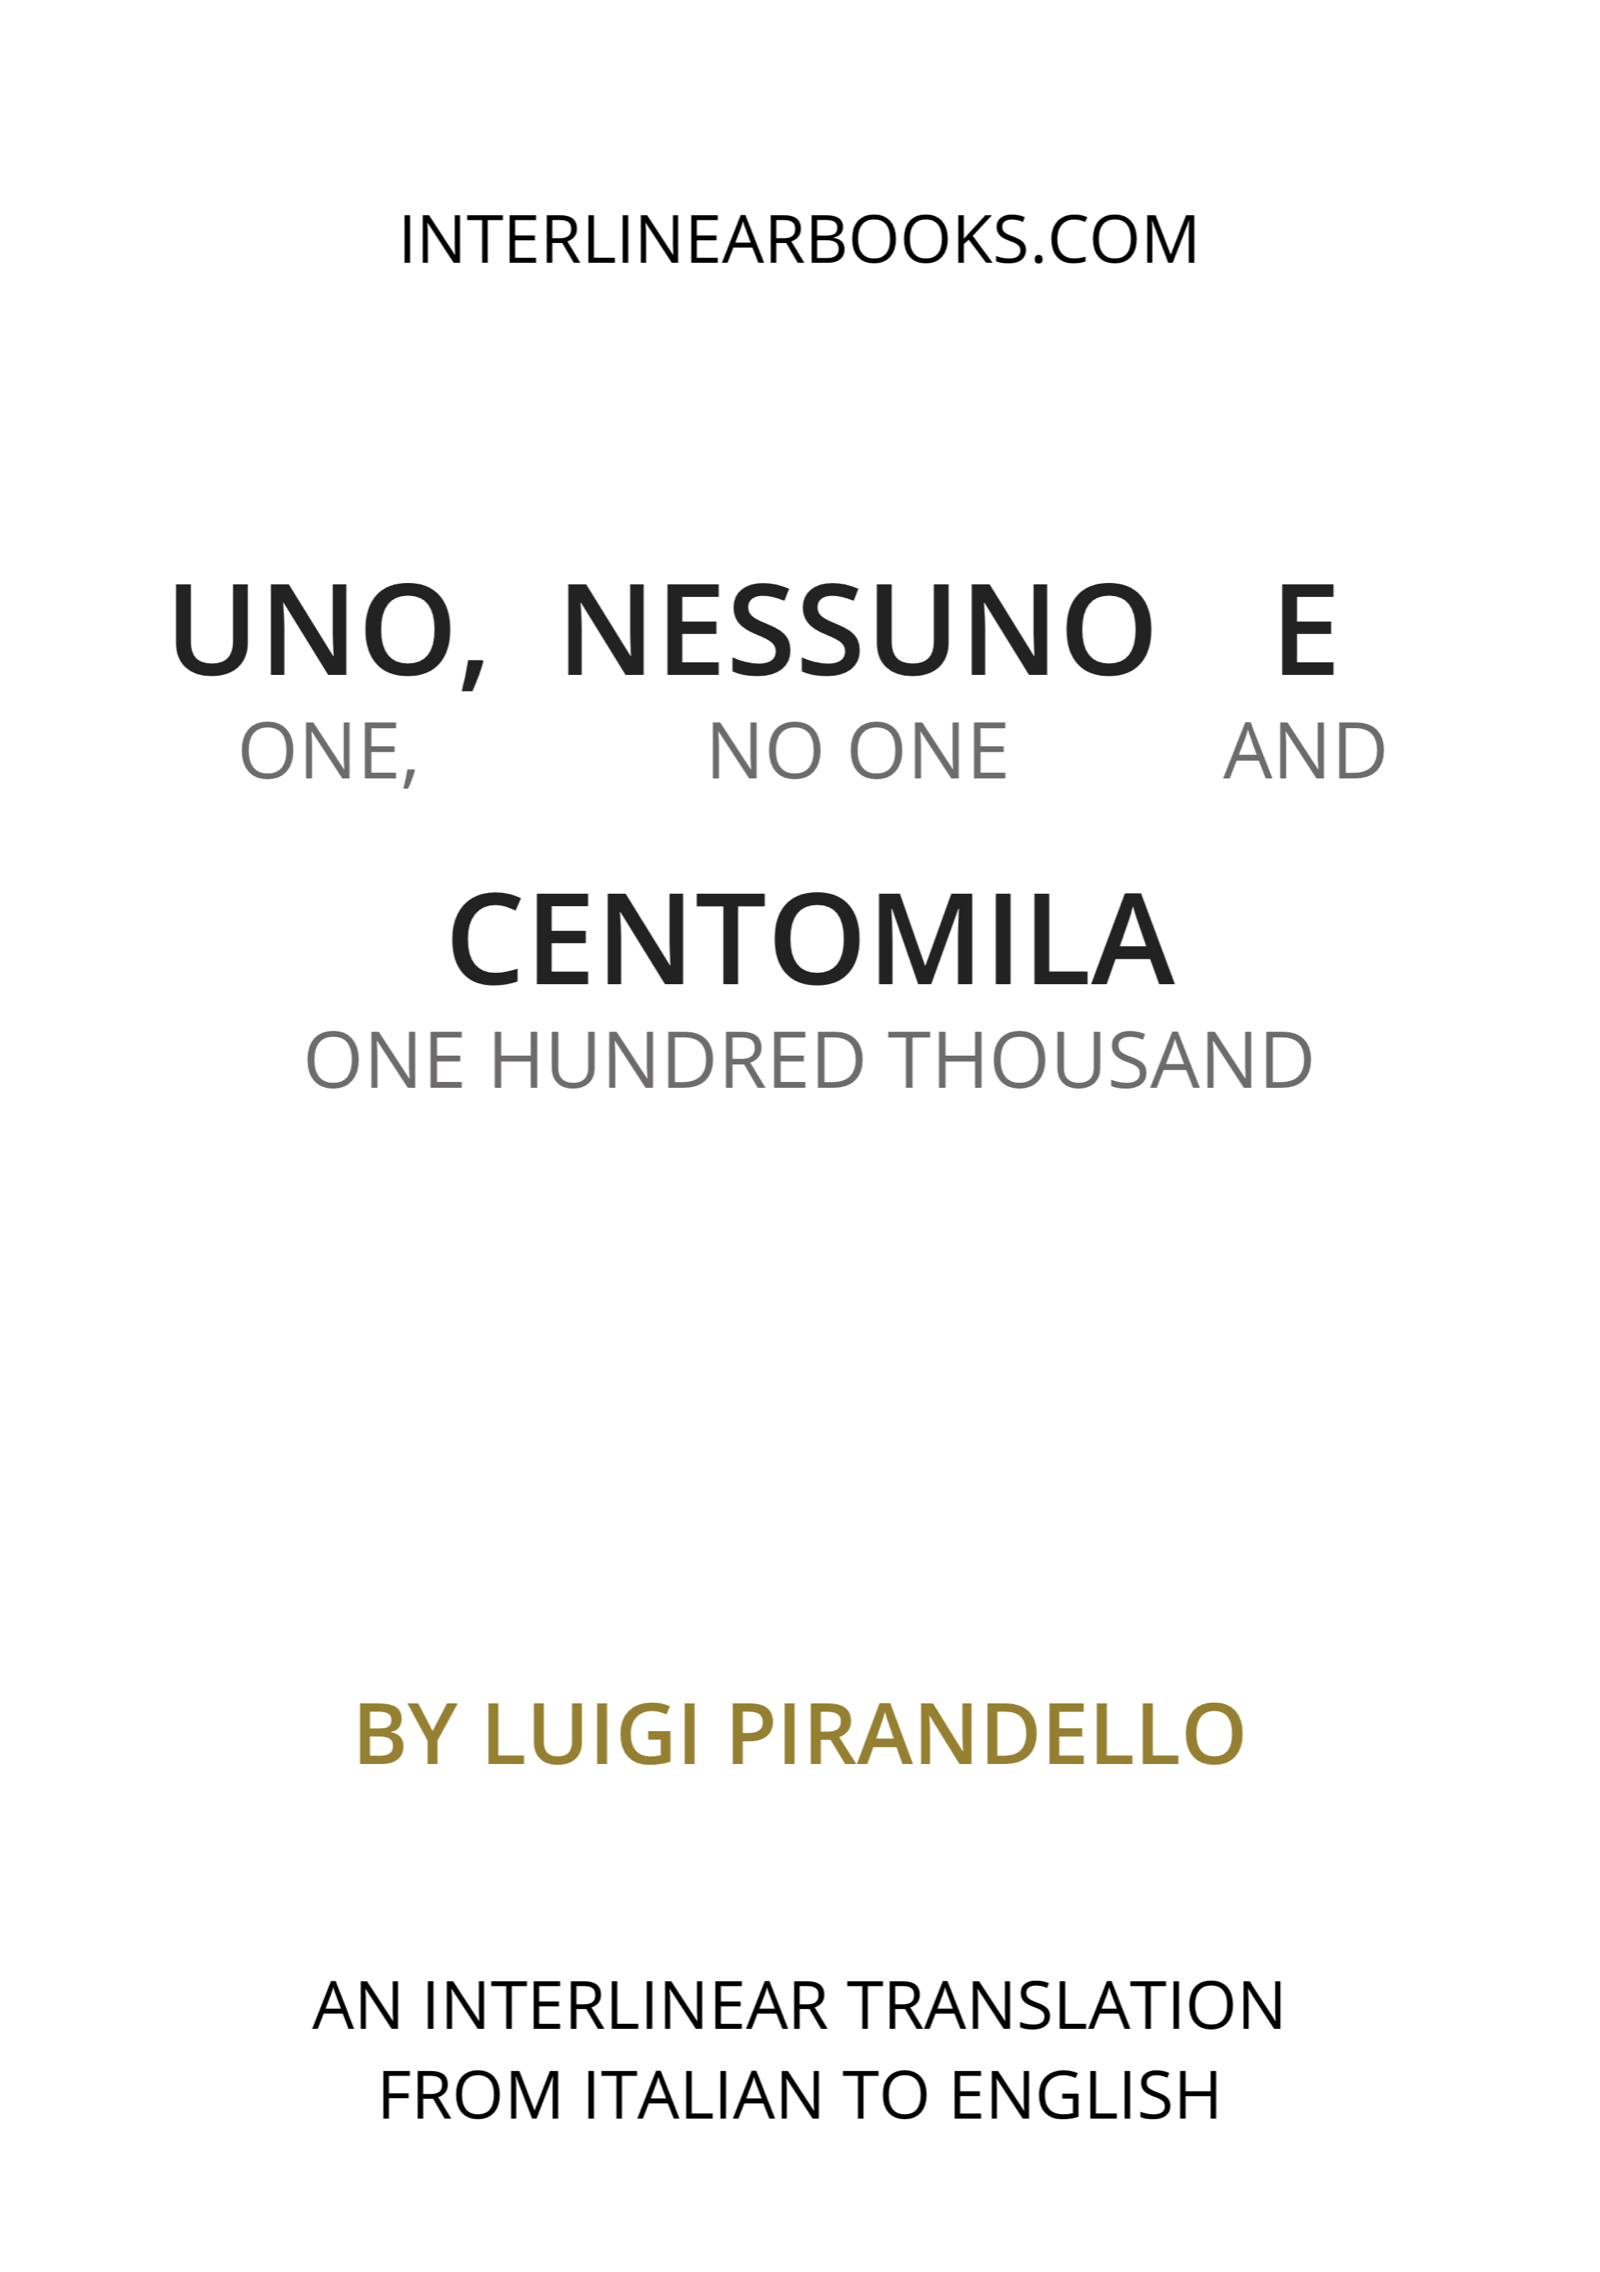 Italian book: Uno, Nessuno e Centomila / One, No One and One Hundred Thousand